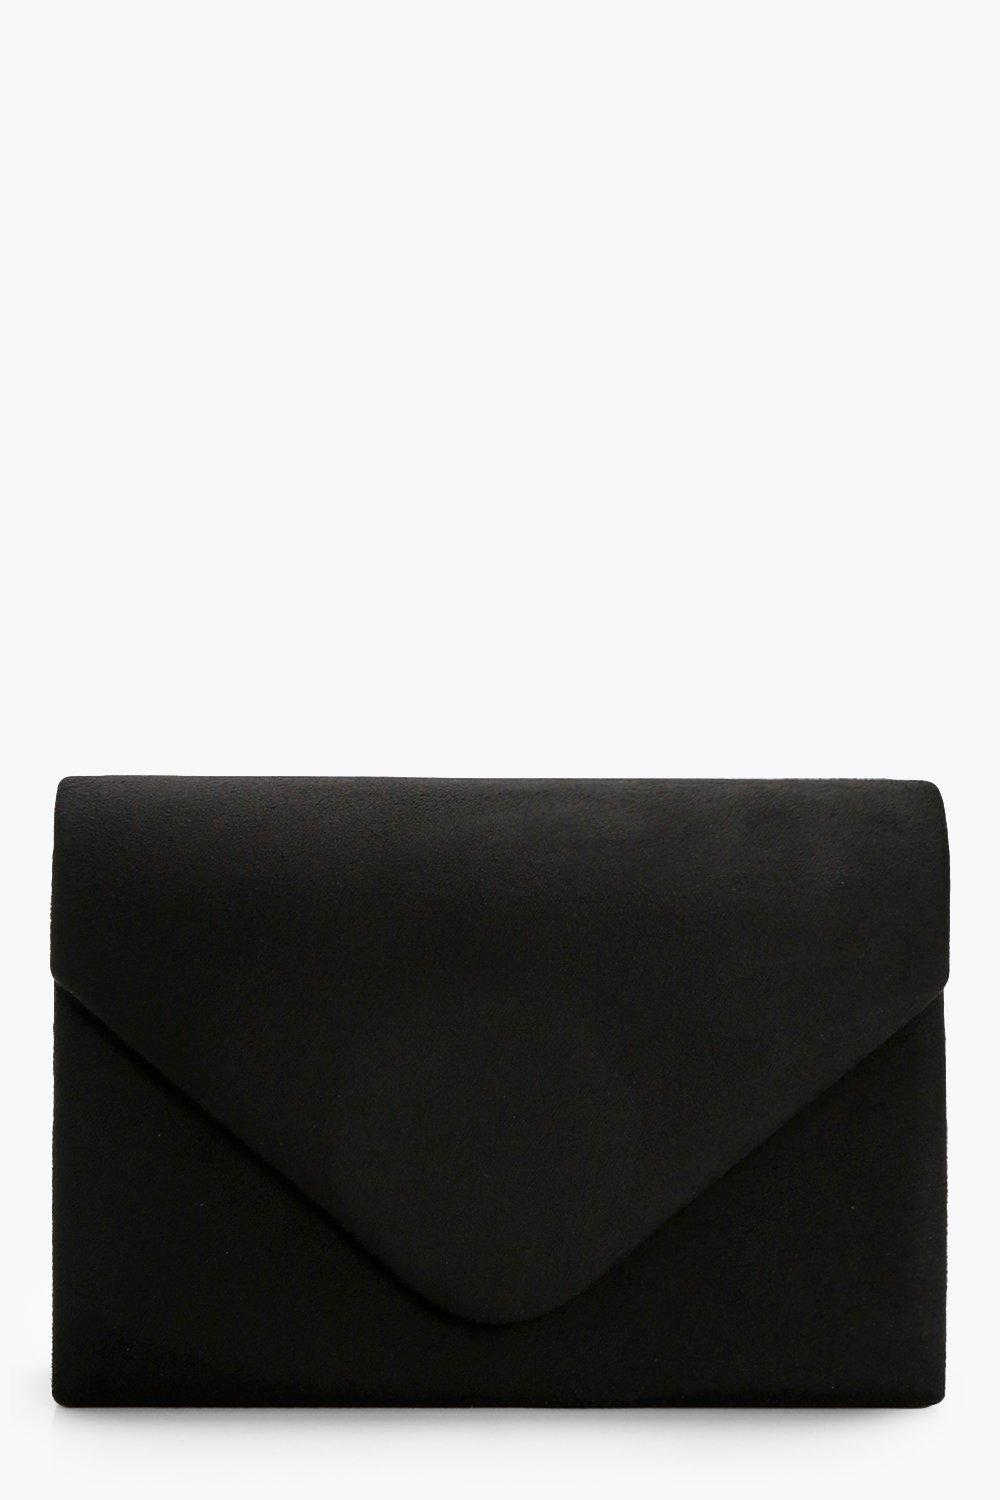 Suede Envelope Clutch - black - Amelia Suede Envel